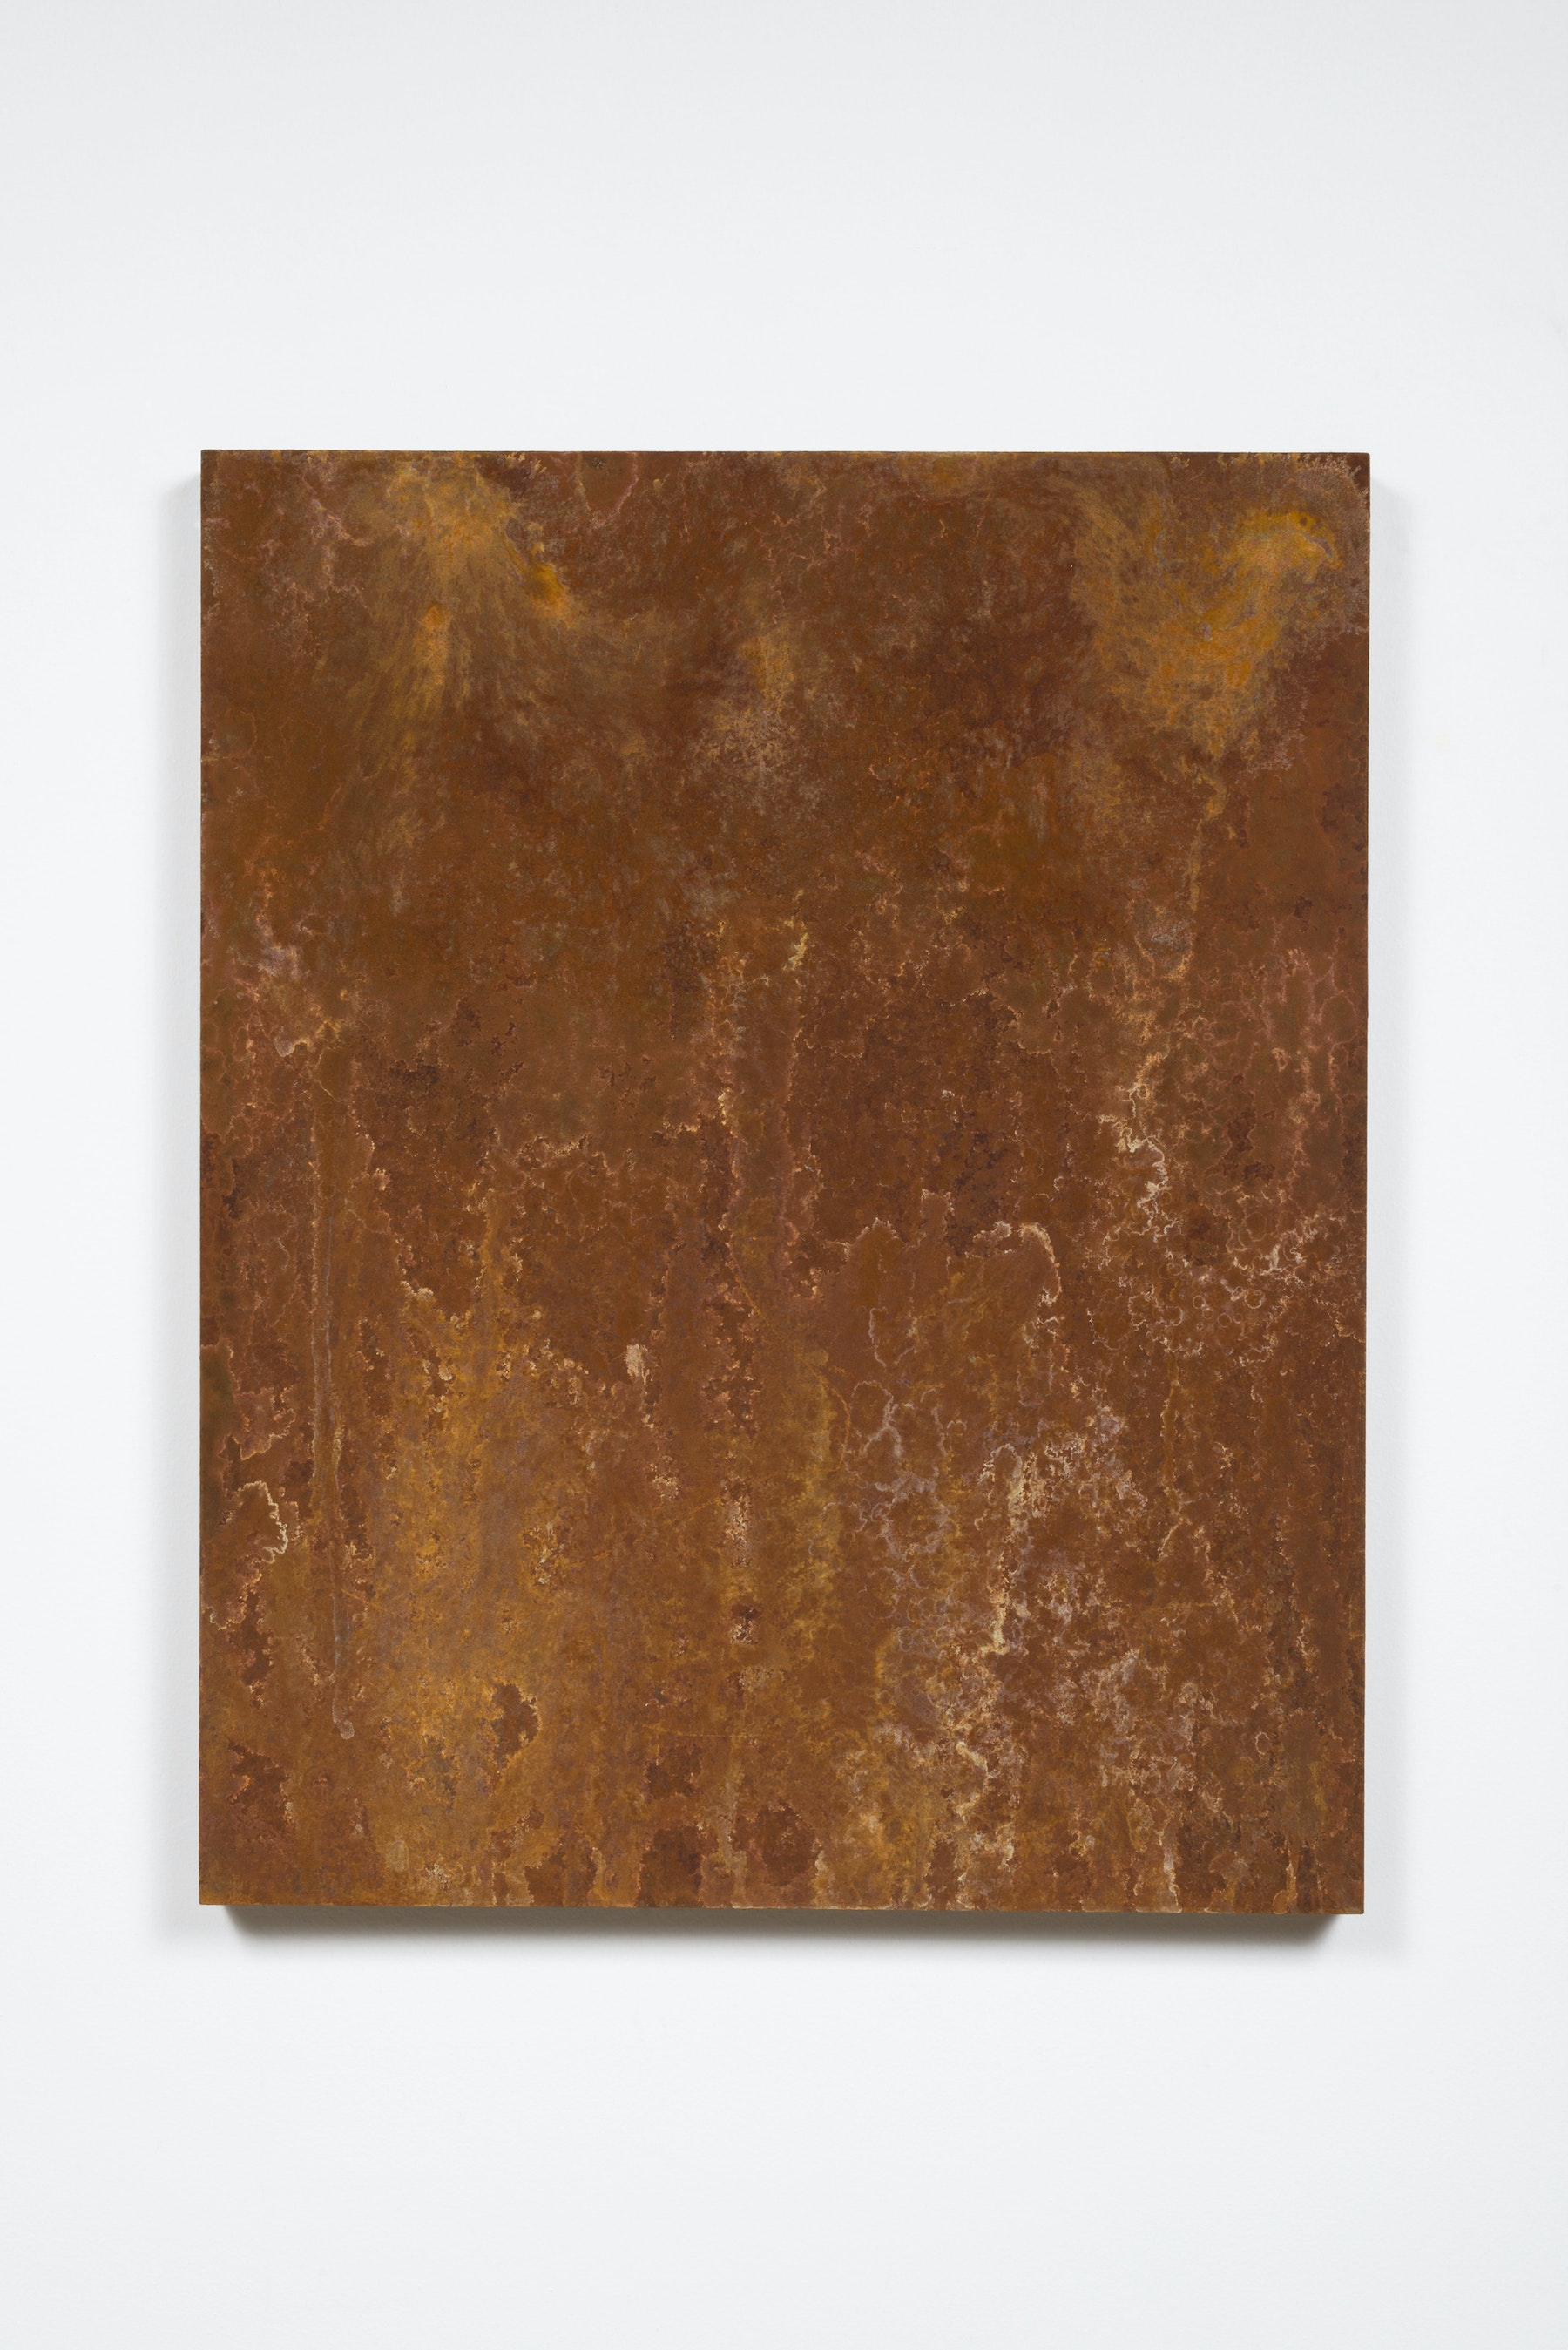 "Ruben Ochoa ""Fuuugh, reminds me of my dad's truck,"" 2015 - 2016 Rust on panel 30"" H x 24"" W (76.2 cm H x 60.96 cm W) Inventory #OCH326 Courtesy of the artist and Vielmetter Los Angeles Photo credit: Jeff McLane"